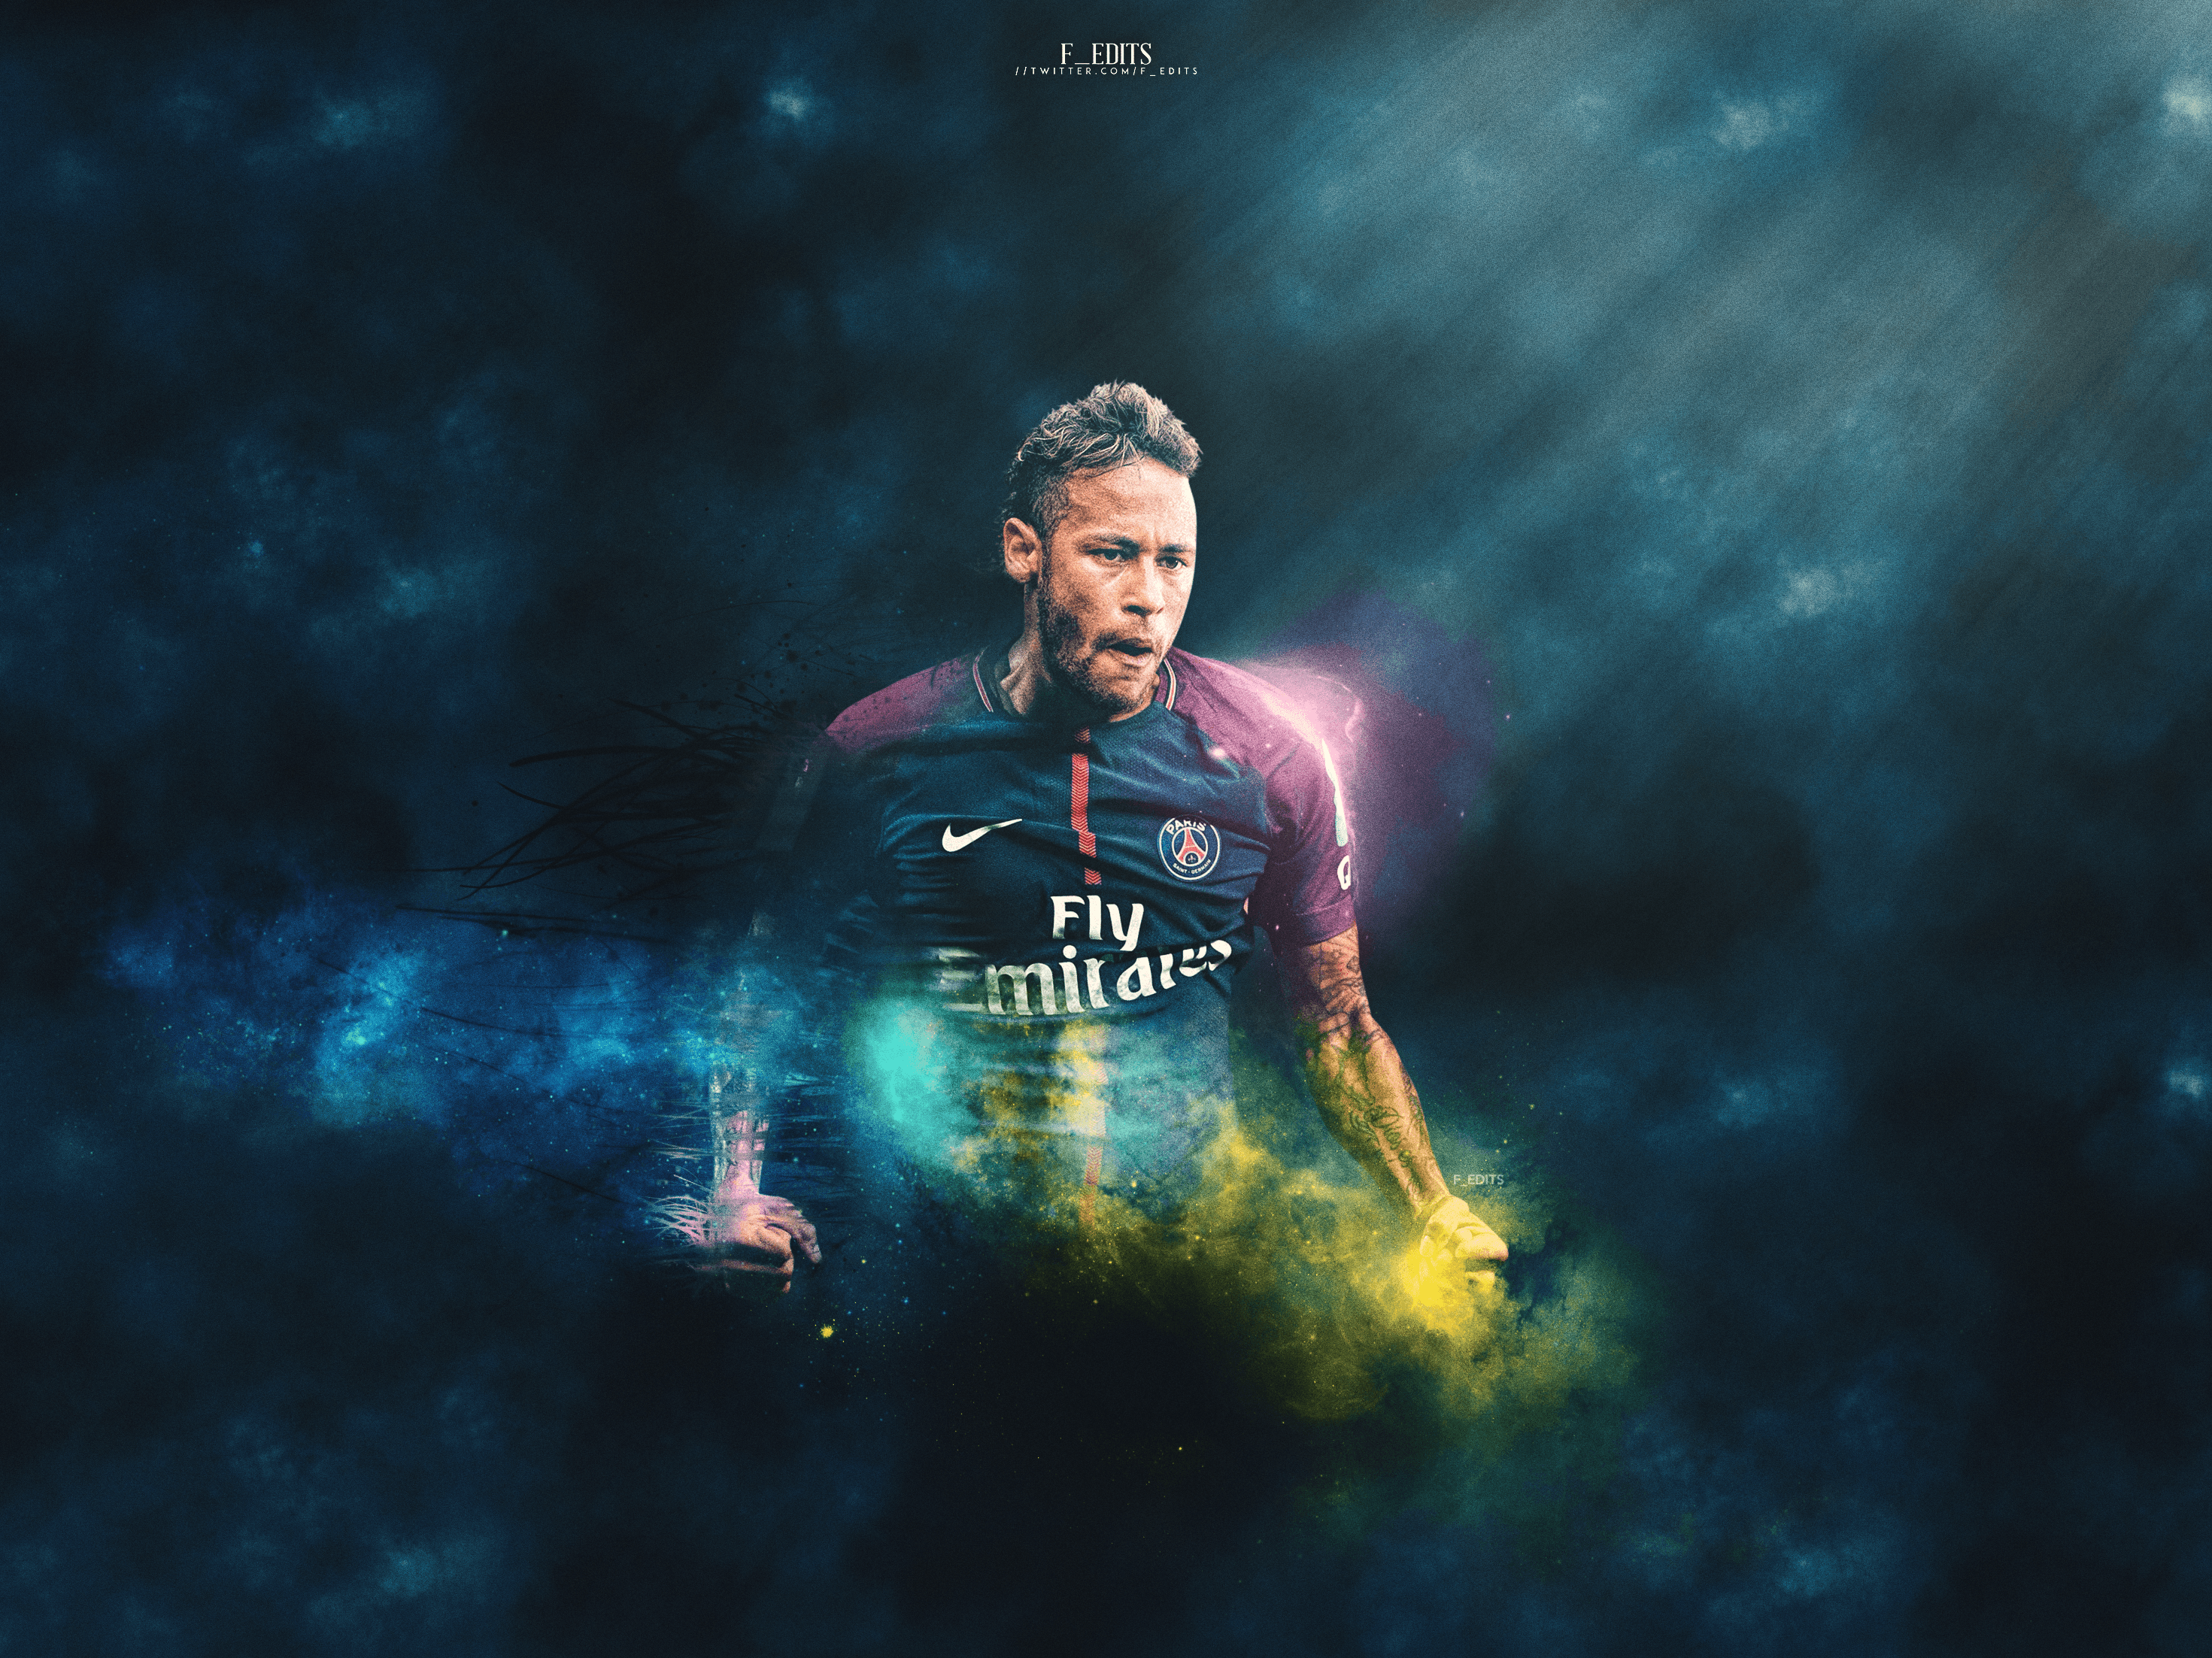 Neymar PSG Desktop Wallpaper By F EDITS On DeviantArt